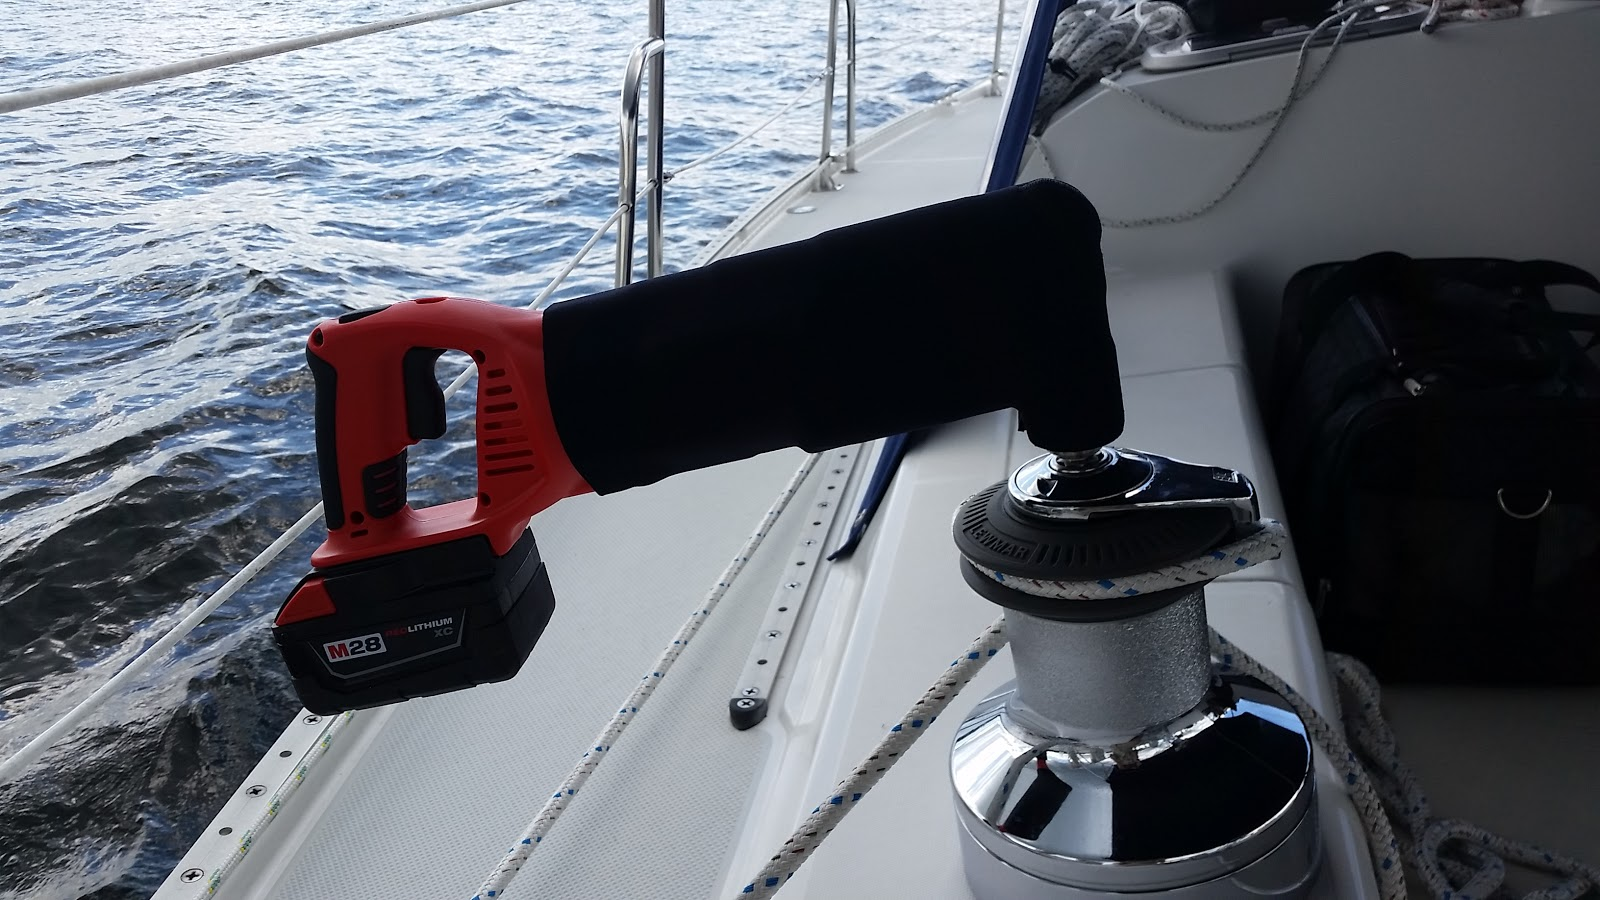 Right Angle Winch : Purdy suite living aboard a sailboat winch bit and